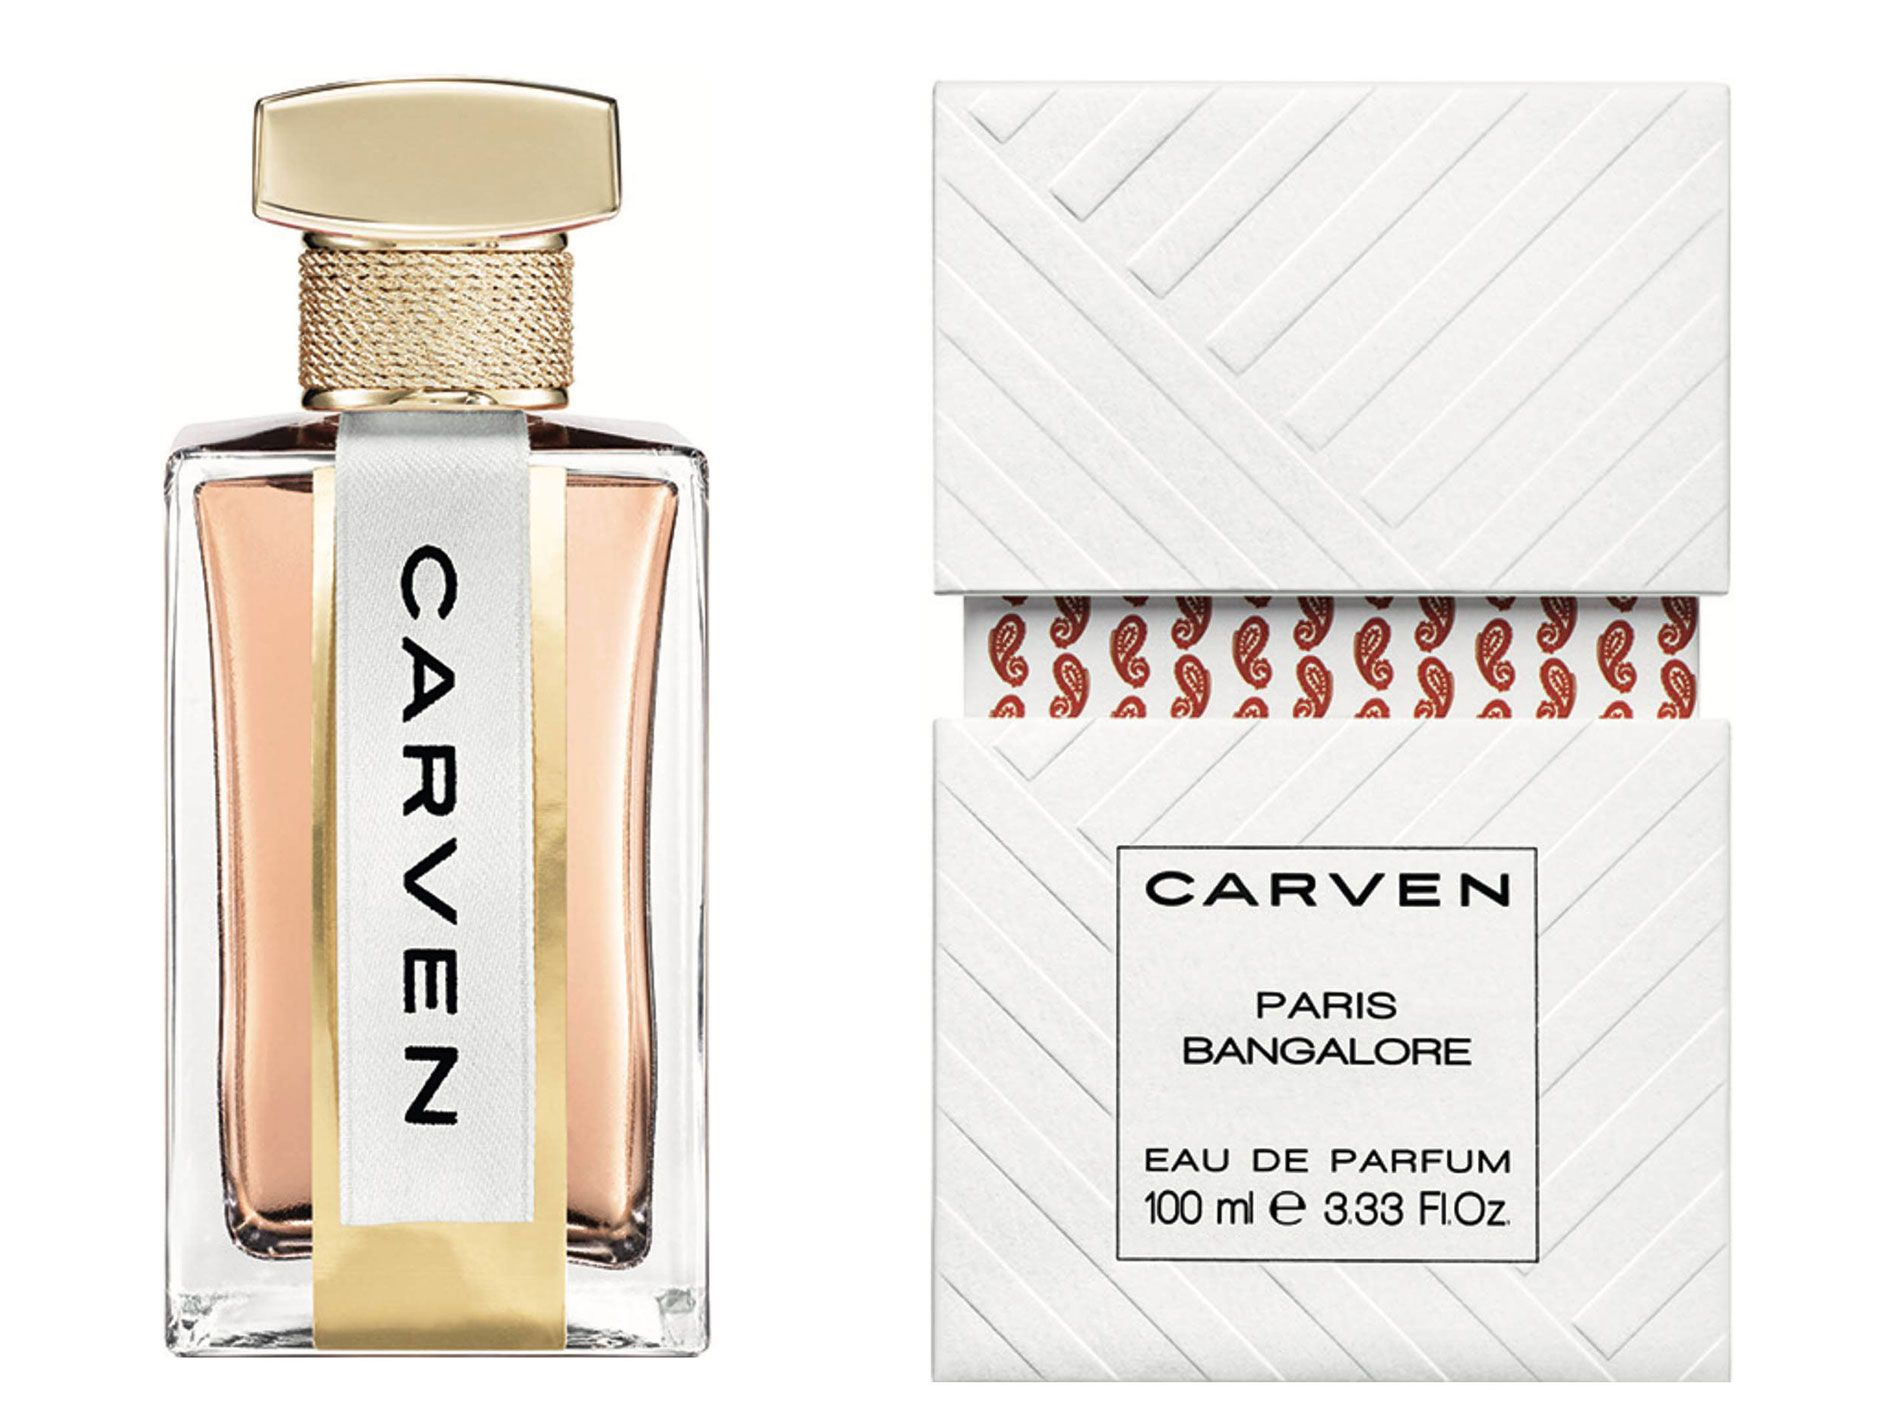 Bangalore Carven Paris Perfumes Oil By Generic Perfumes For Women